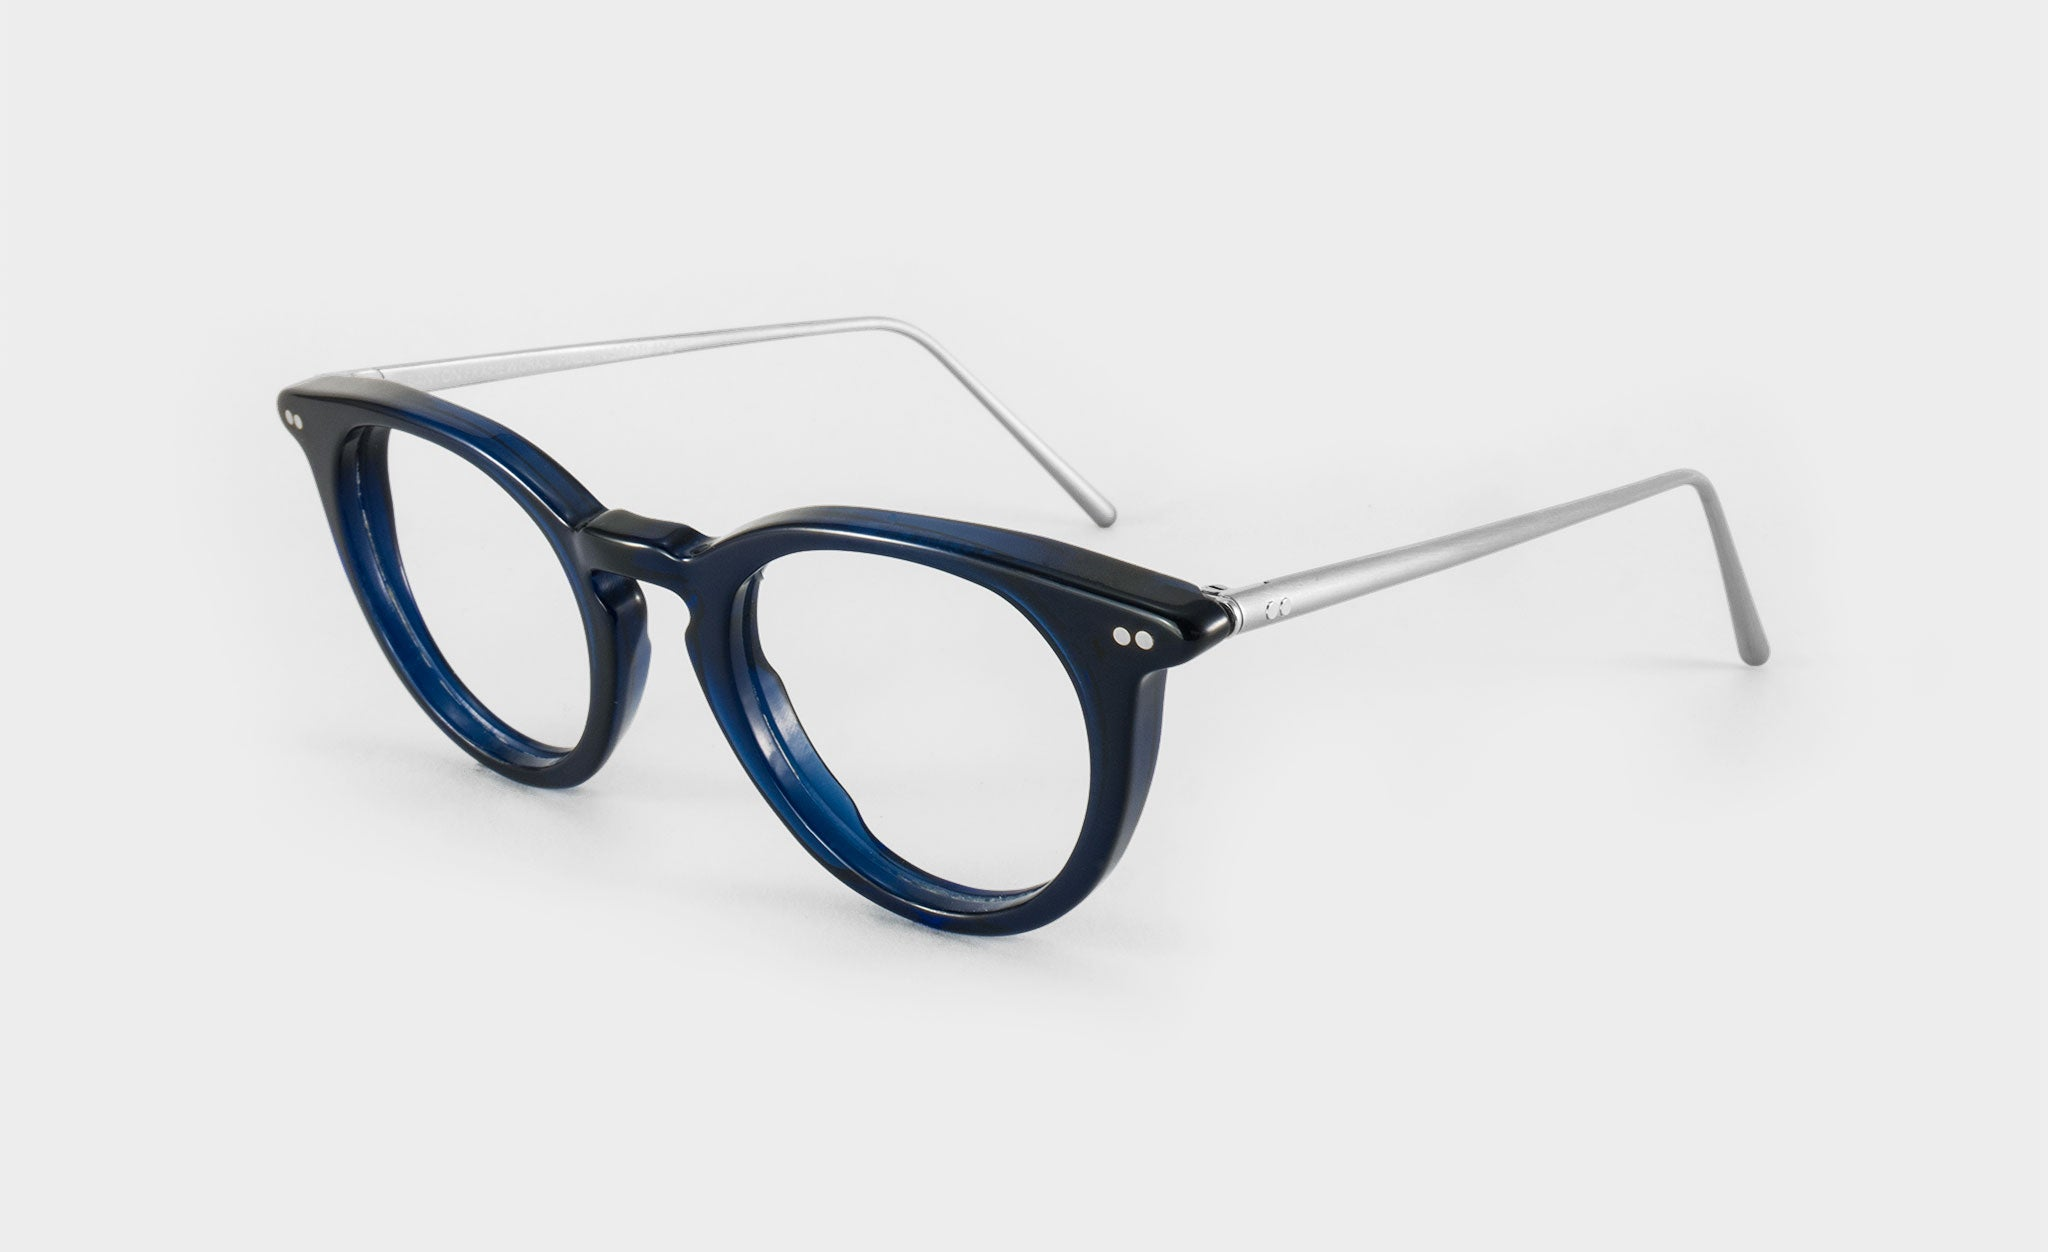 mens round blue glasses frame side view